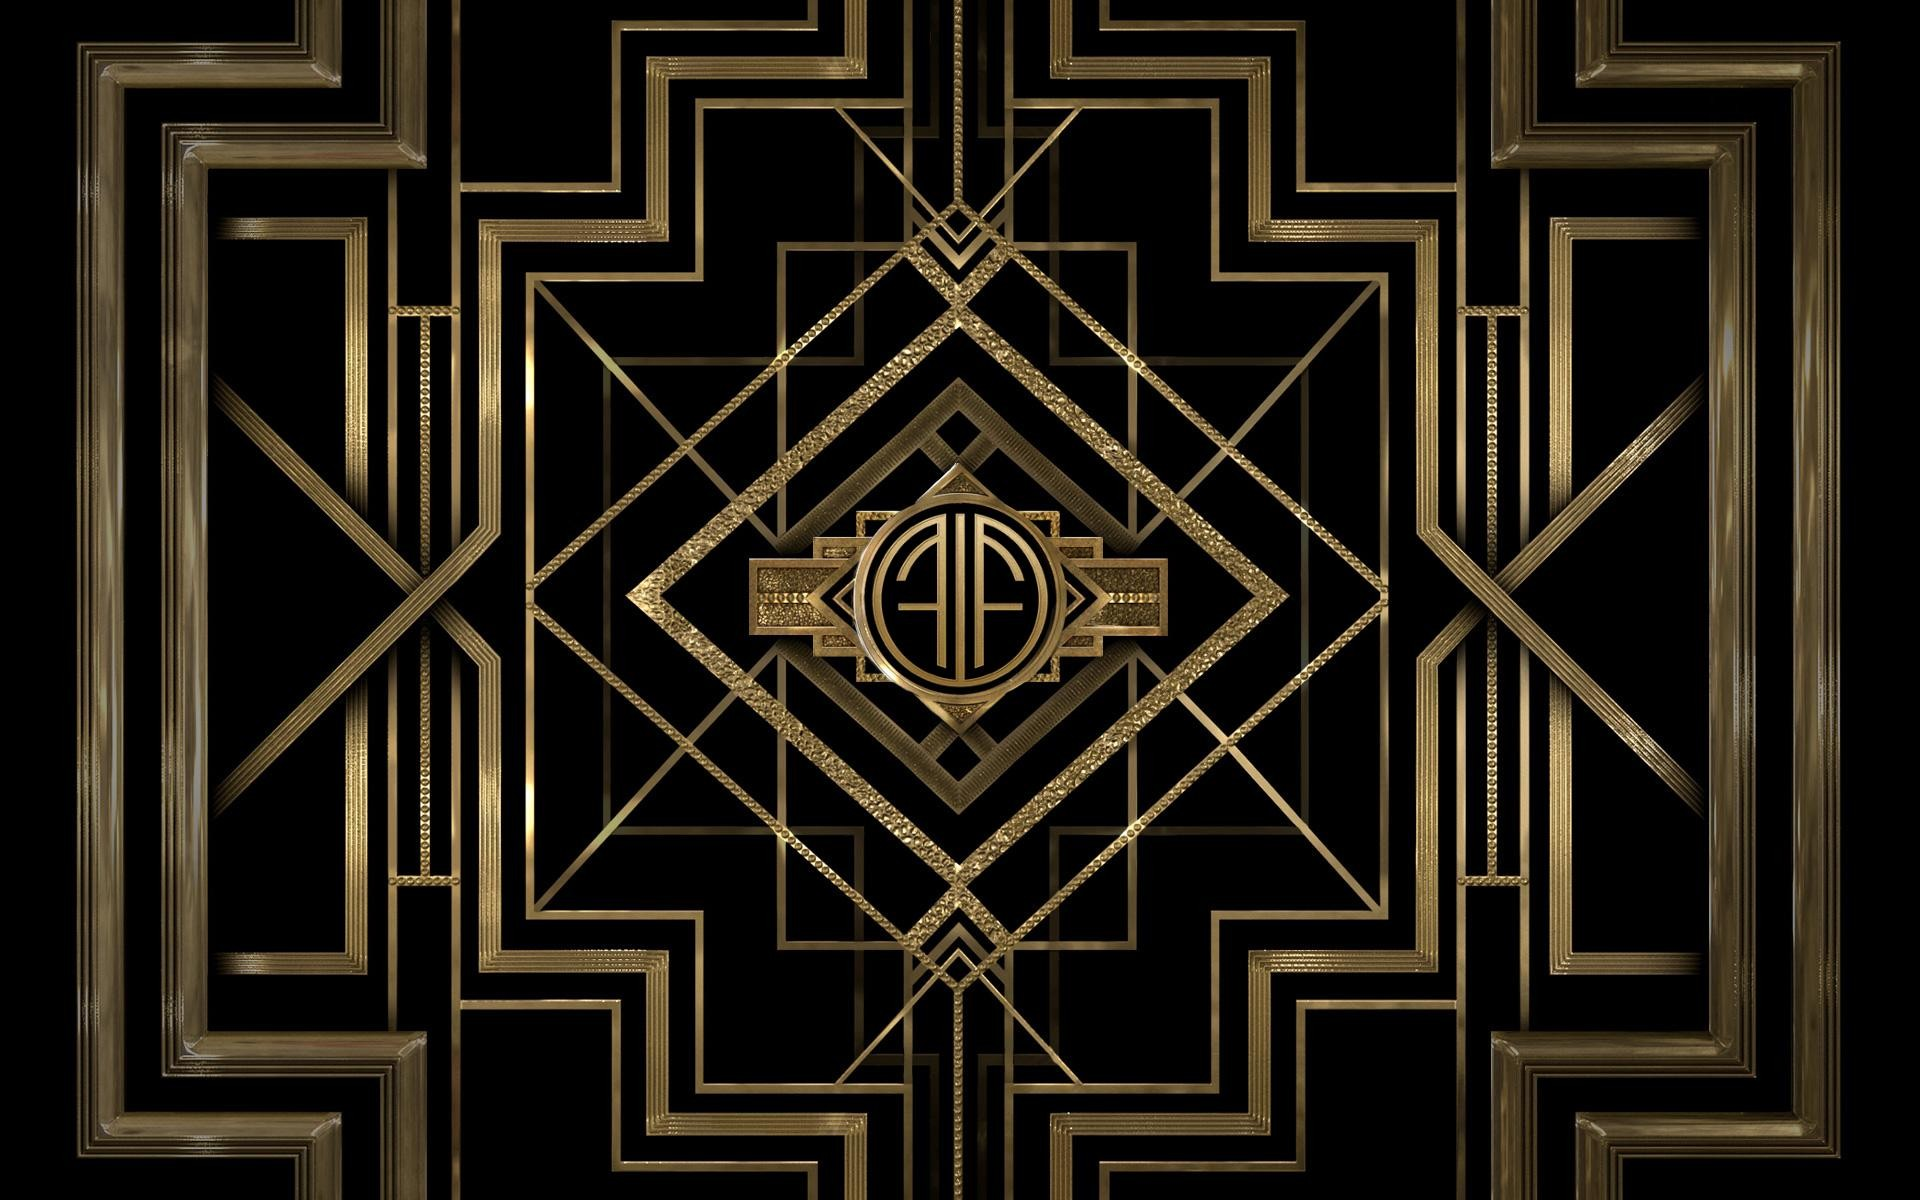 Art deco wallpaper 6583 1920x1200 px for Art decoration france